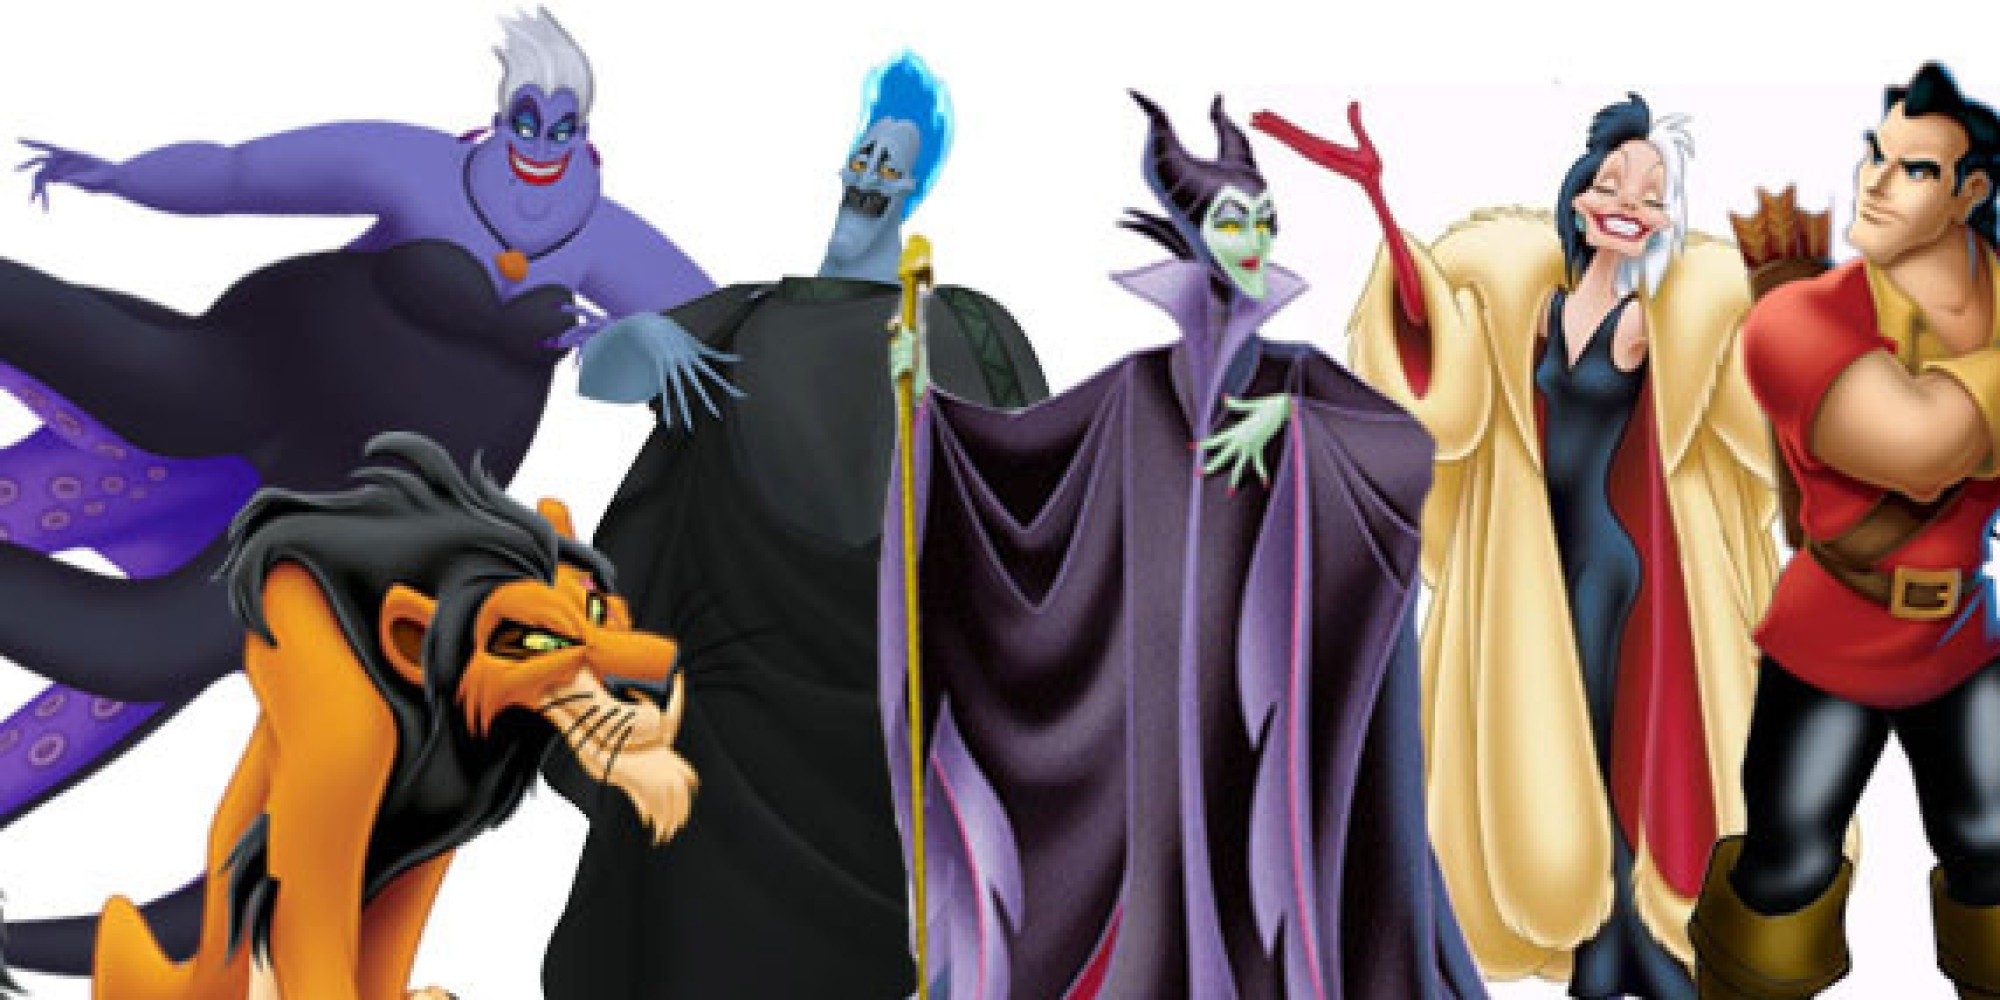 disney villains work as a team sometimes!